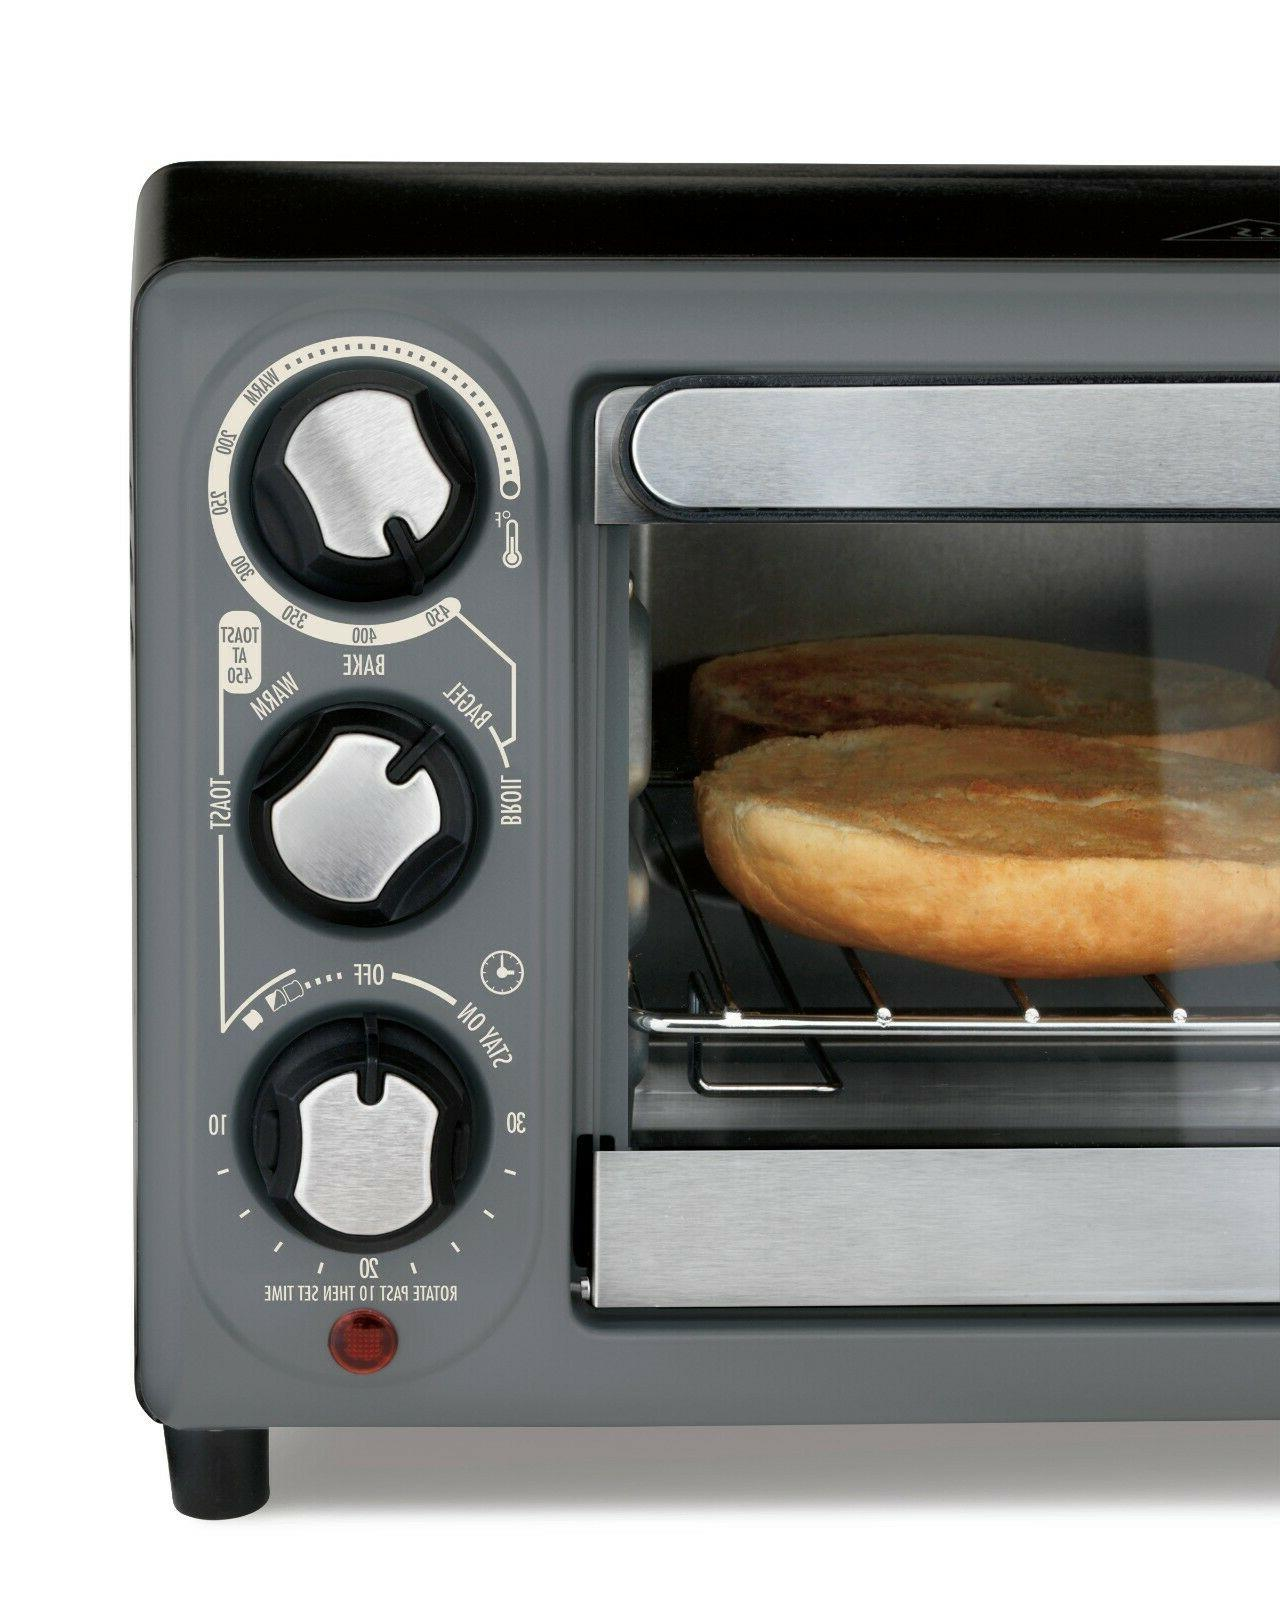 Toaster Prime RV Oven Microwave Countertop